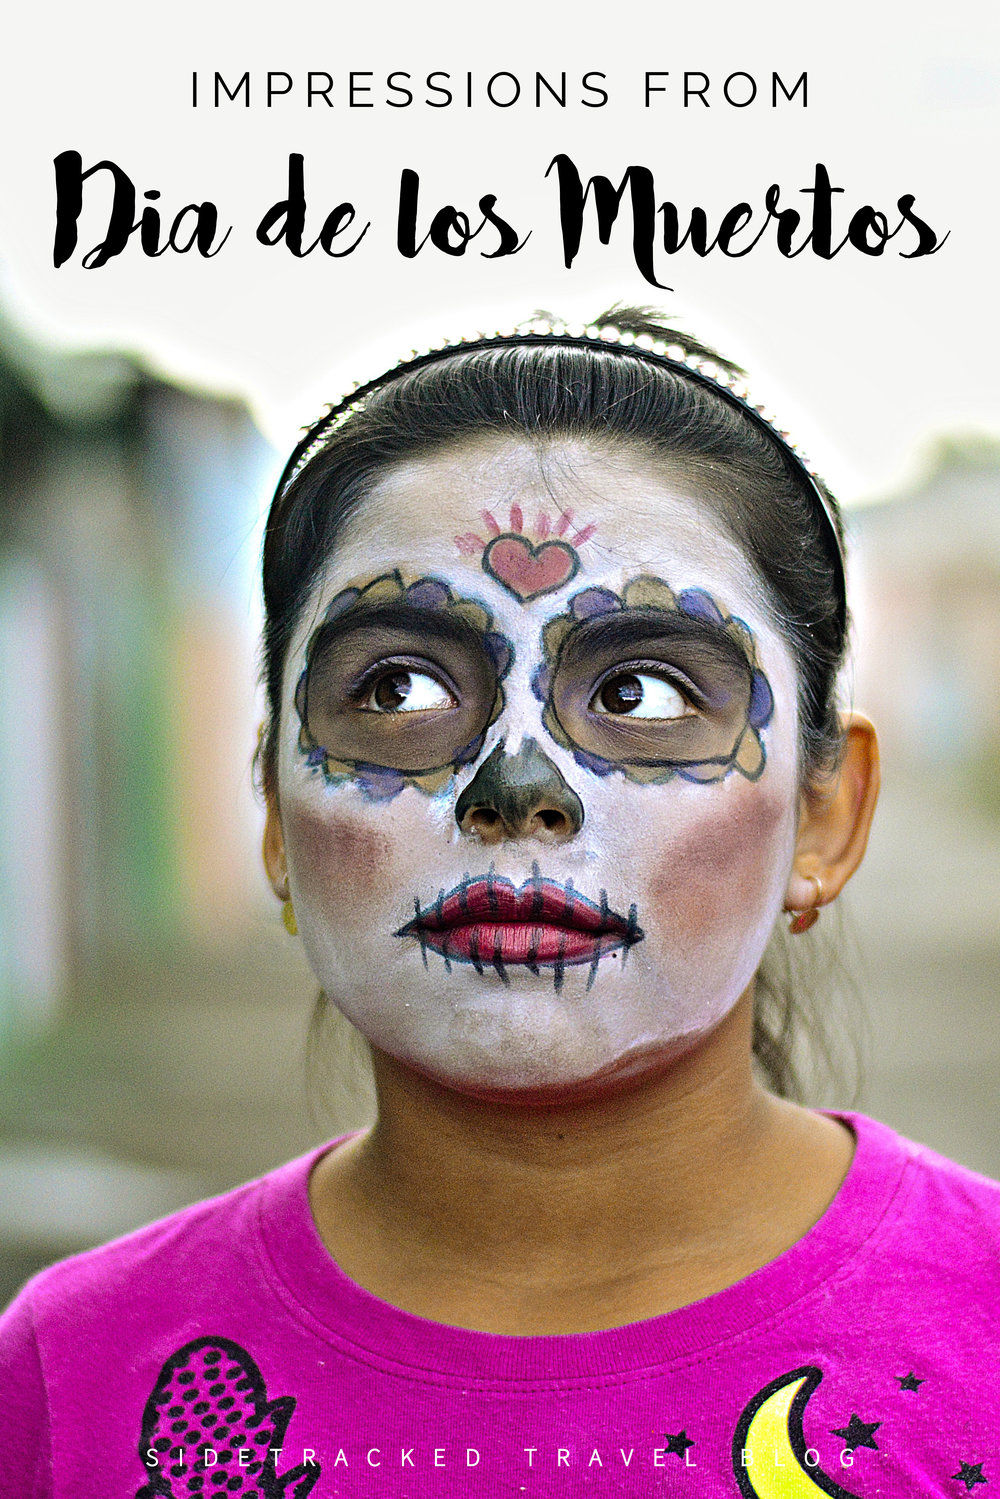 As a visitor, I found Día de los Muertos to be one of the best and most unforgettable times to visit Mexico. Here are some of my impressions from this unique holiday to inspire you.